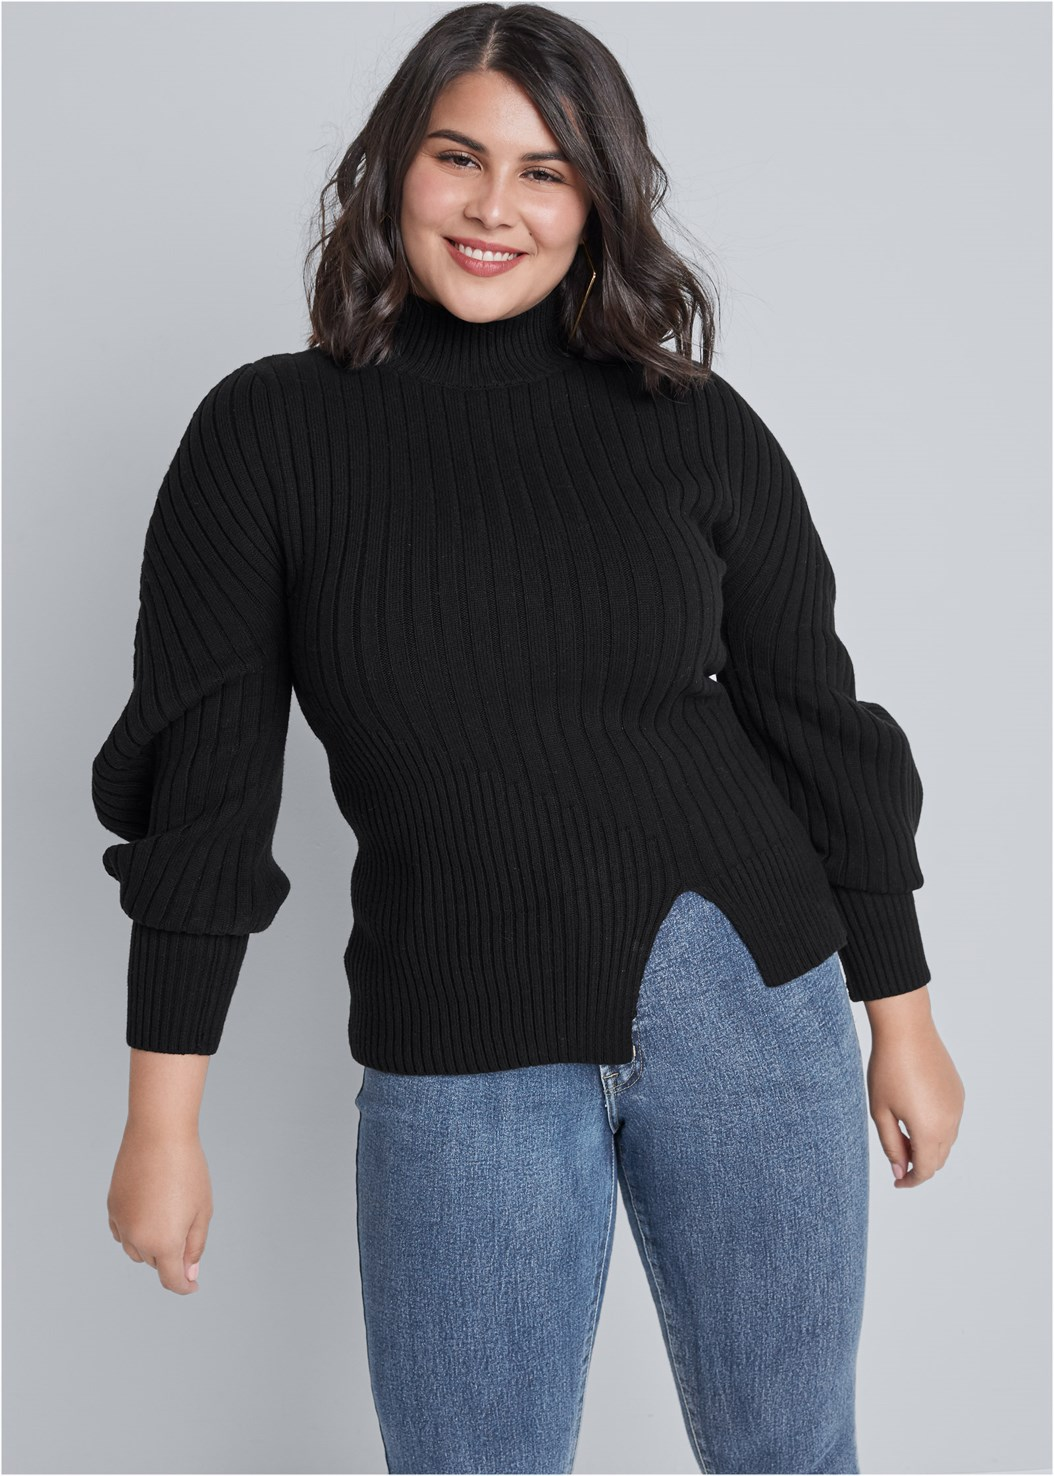 Balloon Sleeve Sweater,Mid Rise Color Skinny Jeans,Square Hoop Earrings